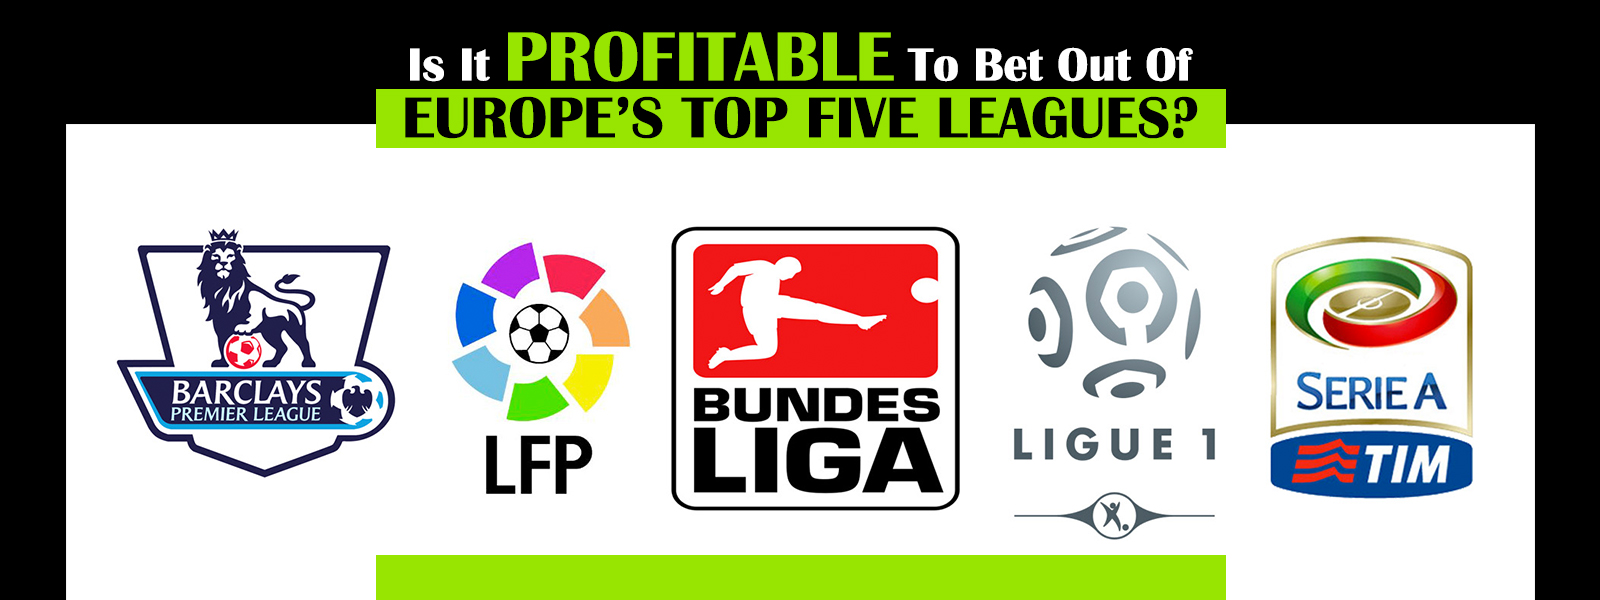 Is It Profitable To Bet Out Of Europe's Top Five leagues?